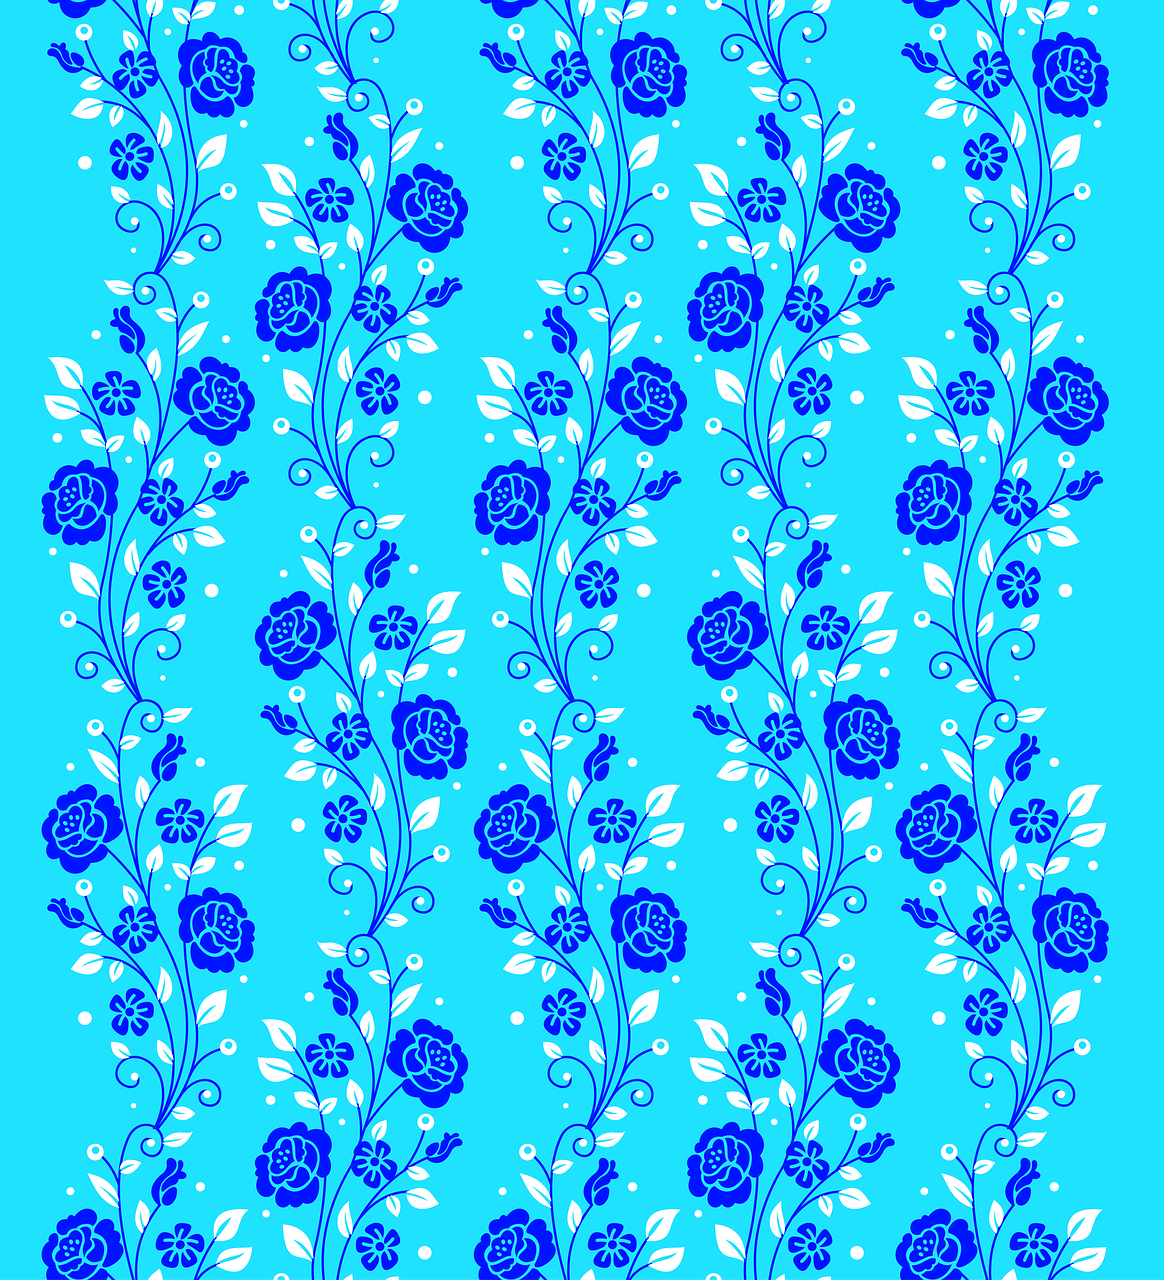 Floral Backgrounds Blue Flowers Blue Flowers Delicate Free Image